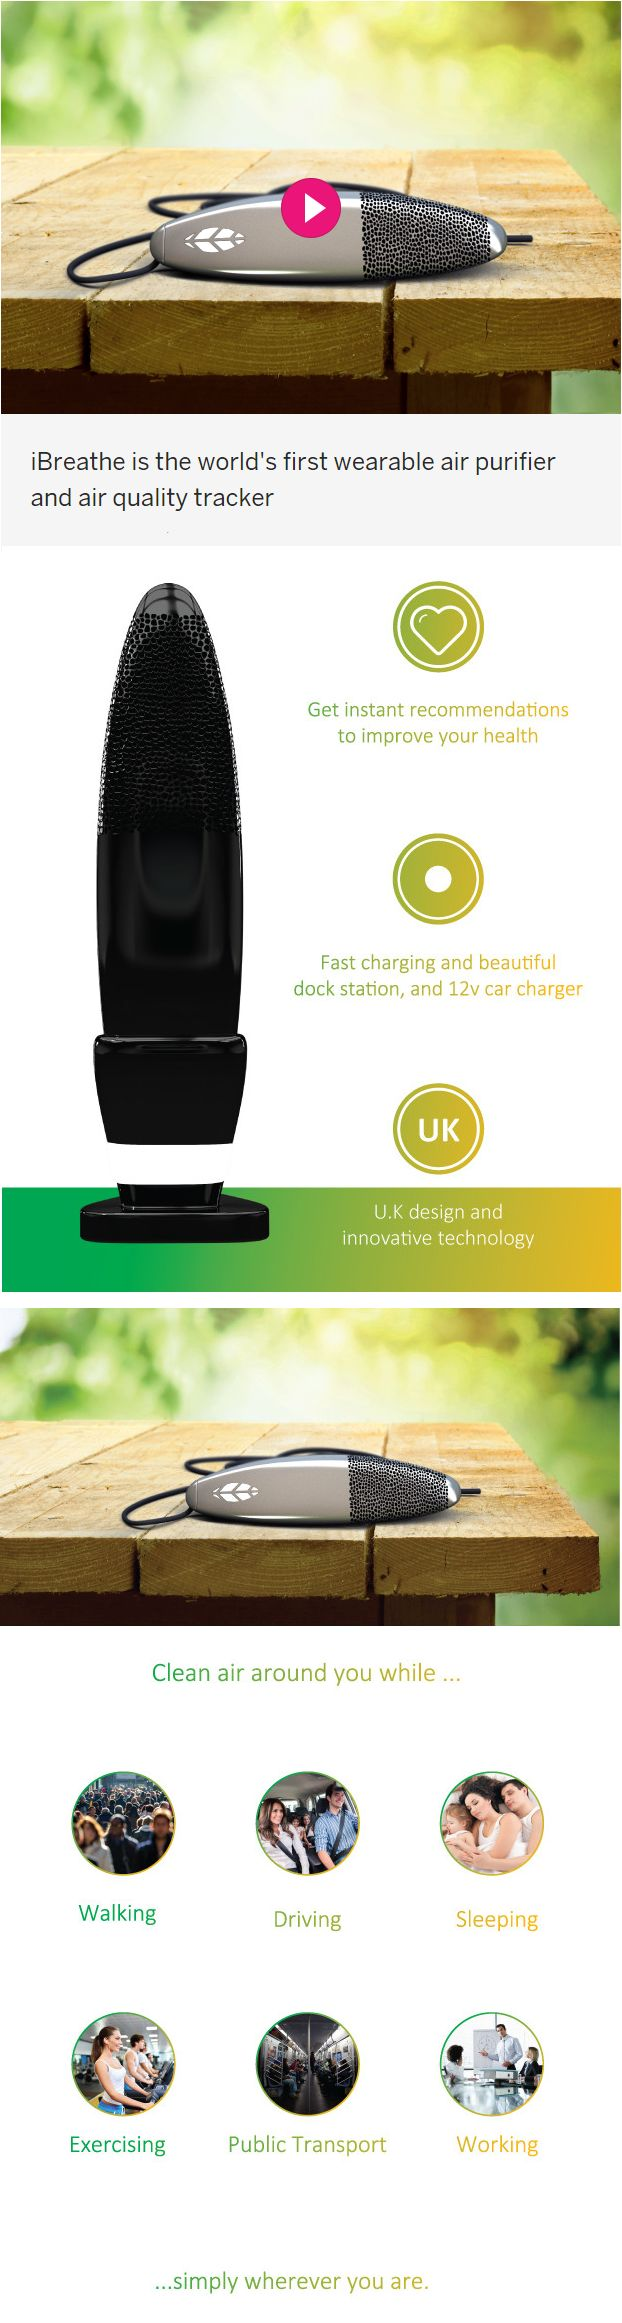 iBreathe: Fresh Air Anytime, Anywhere. iBreathe is the world's first wearable air purifier and air quality tracker. Checks air quality in real time. Indoor & Outdoor use. It's highly effective against air pollutants, bacteria, viruses, allergens, and air-borne diseases. Long-lasting, recharable battery. Auto-updates itself. Free Android/iOS app. See also http://ibreatheair.com.